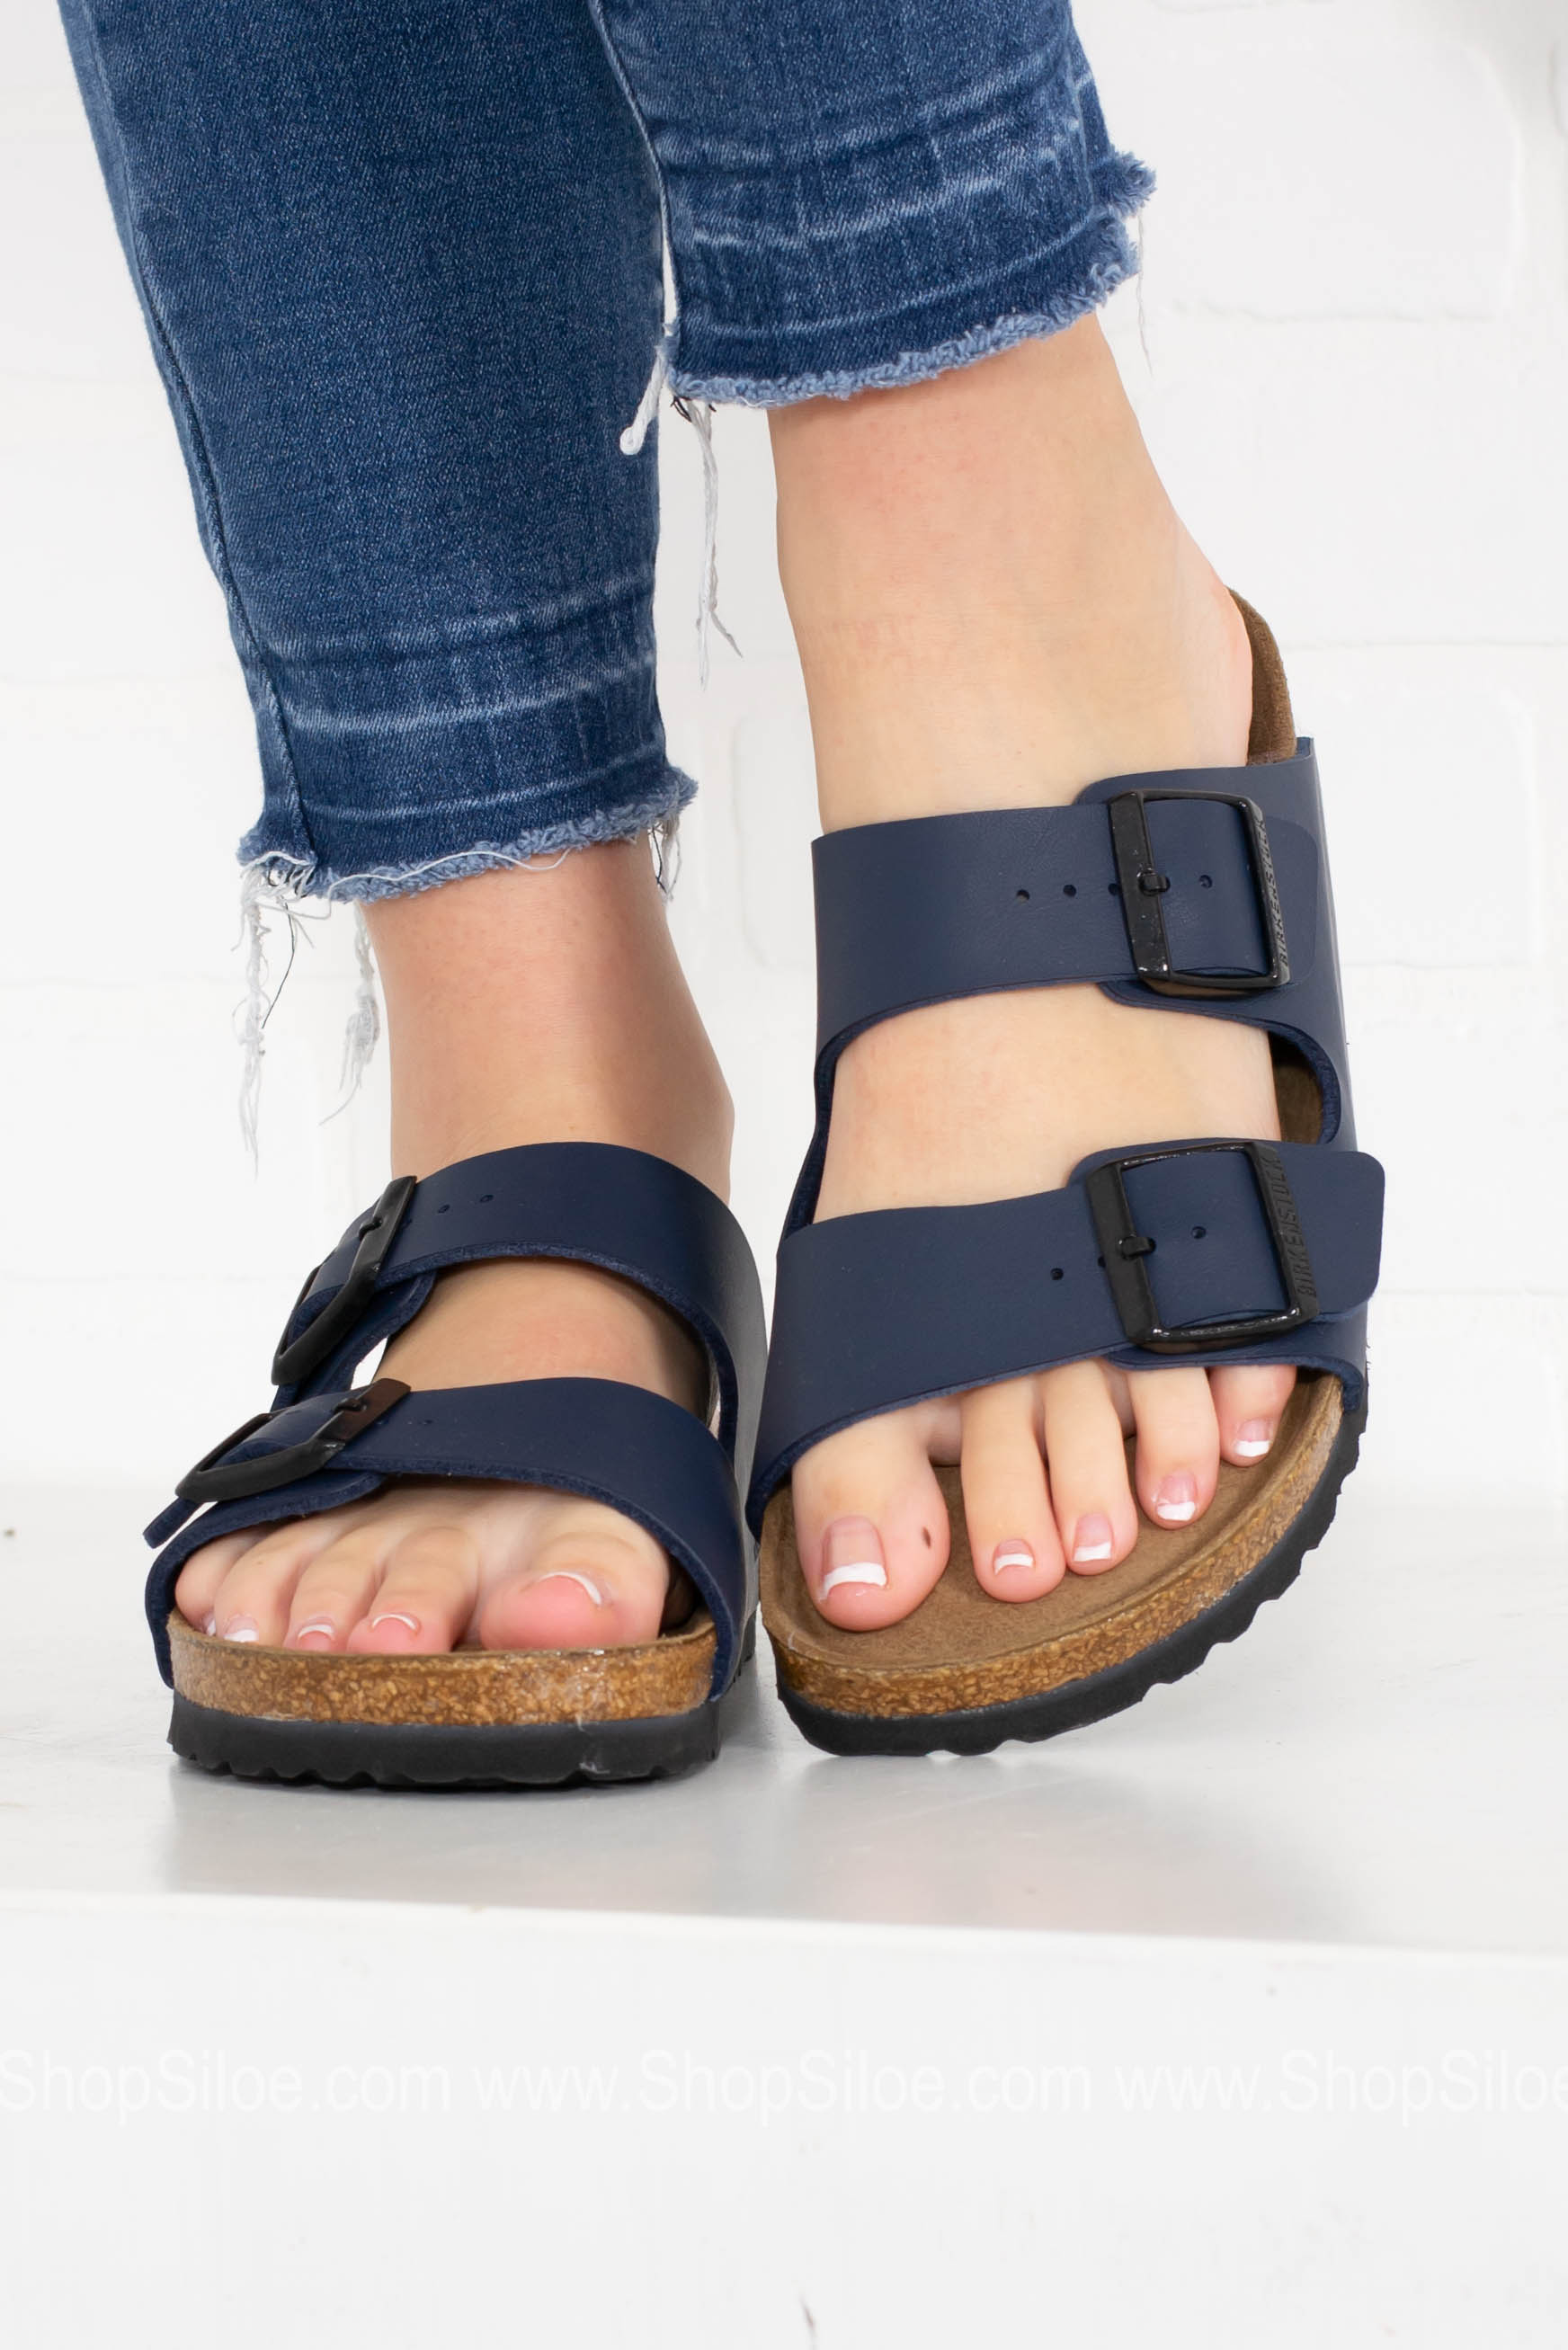 Online Women's CollectionSiloe Sandal Birkenstock Fashion vmO8yN0wnP